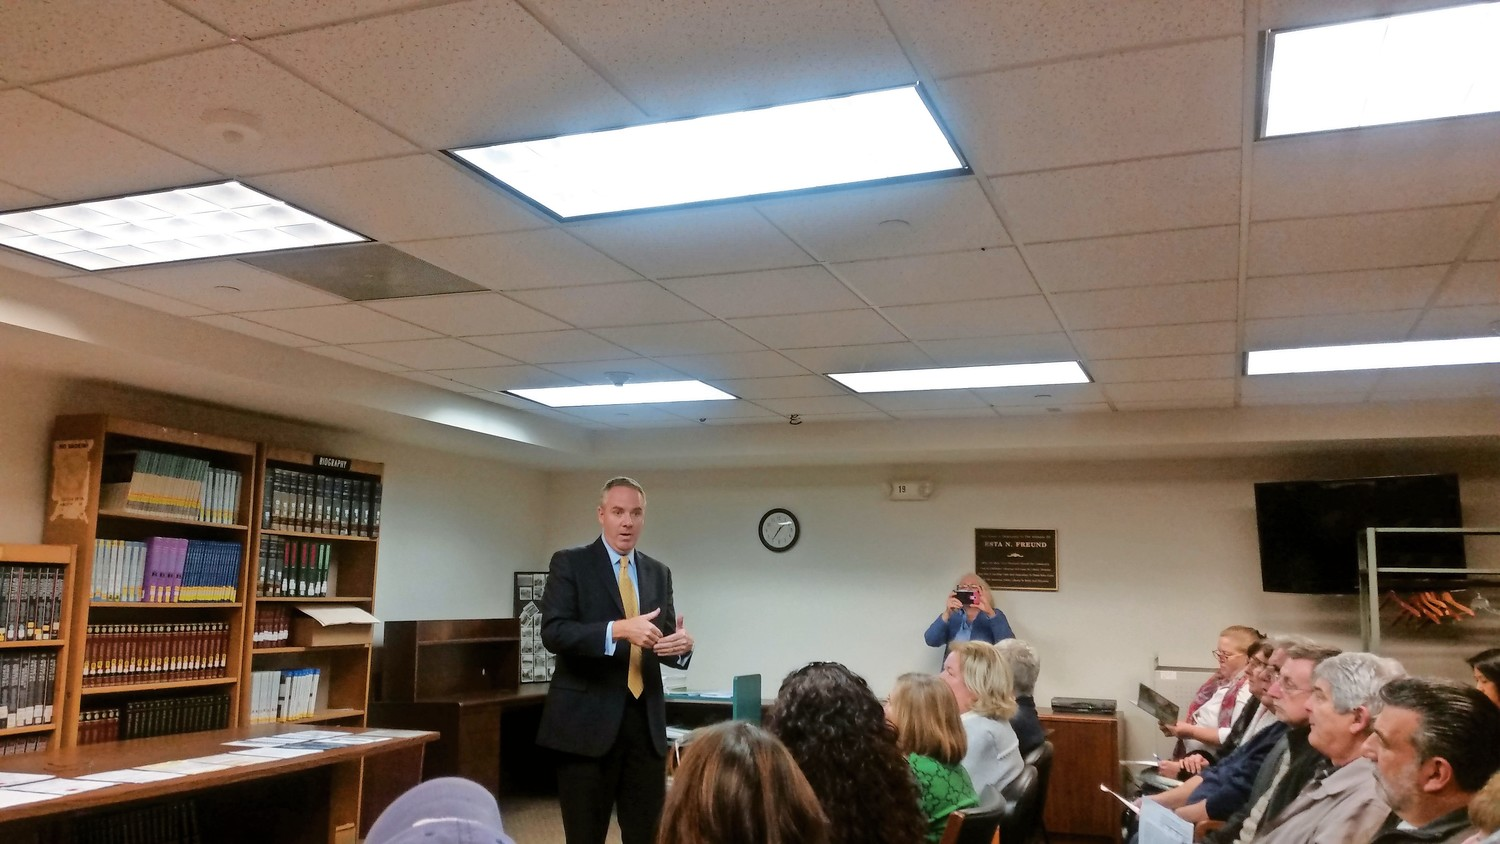 Town of Hempstead Receiver of Taxes Donald Clavin Jr. met with residents at a tax forum on Nov. 29.